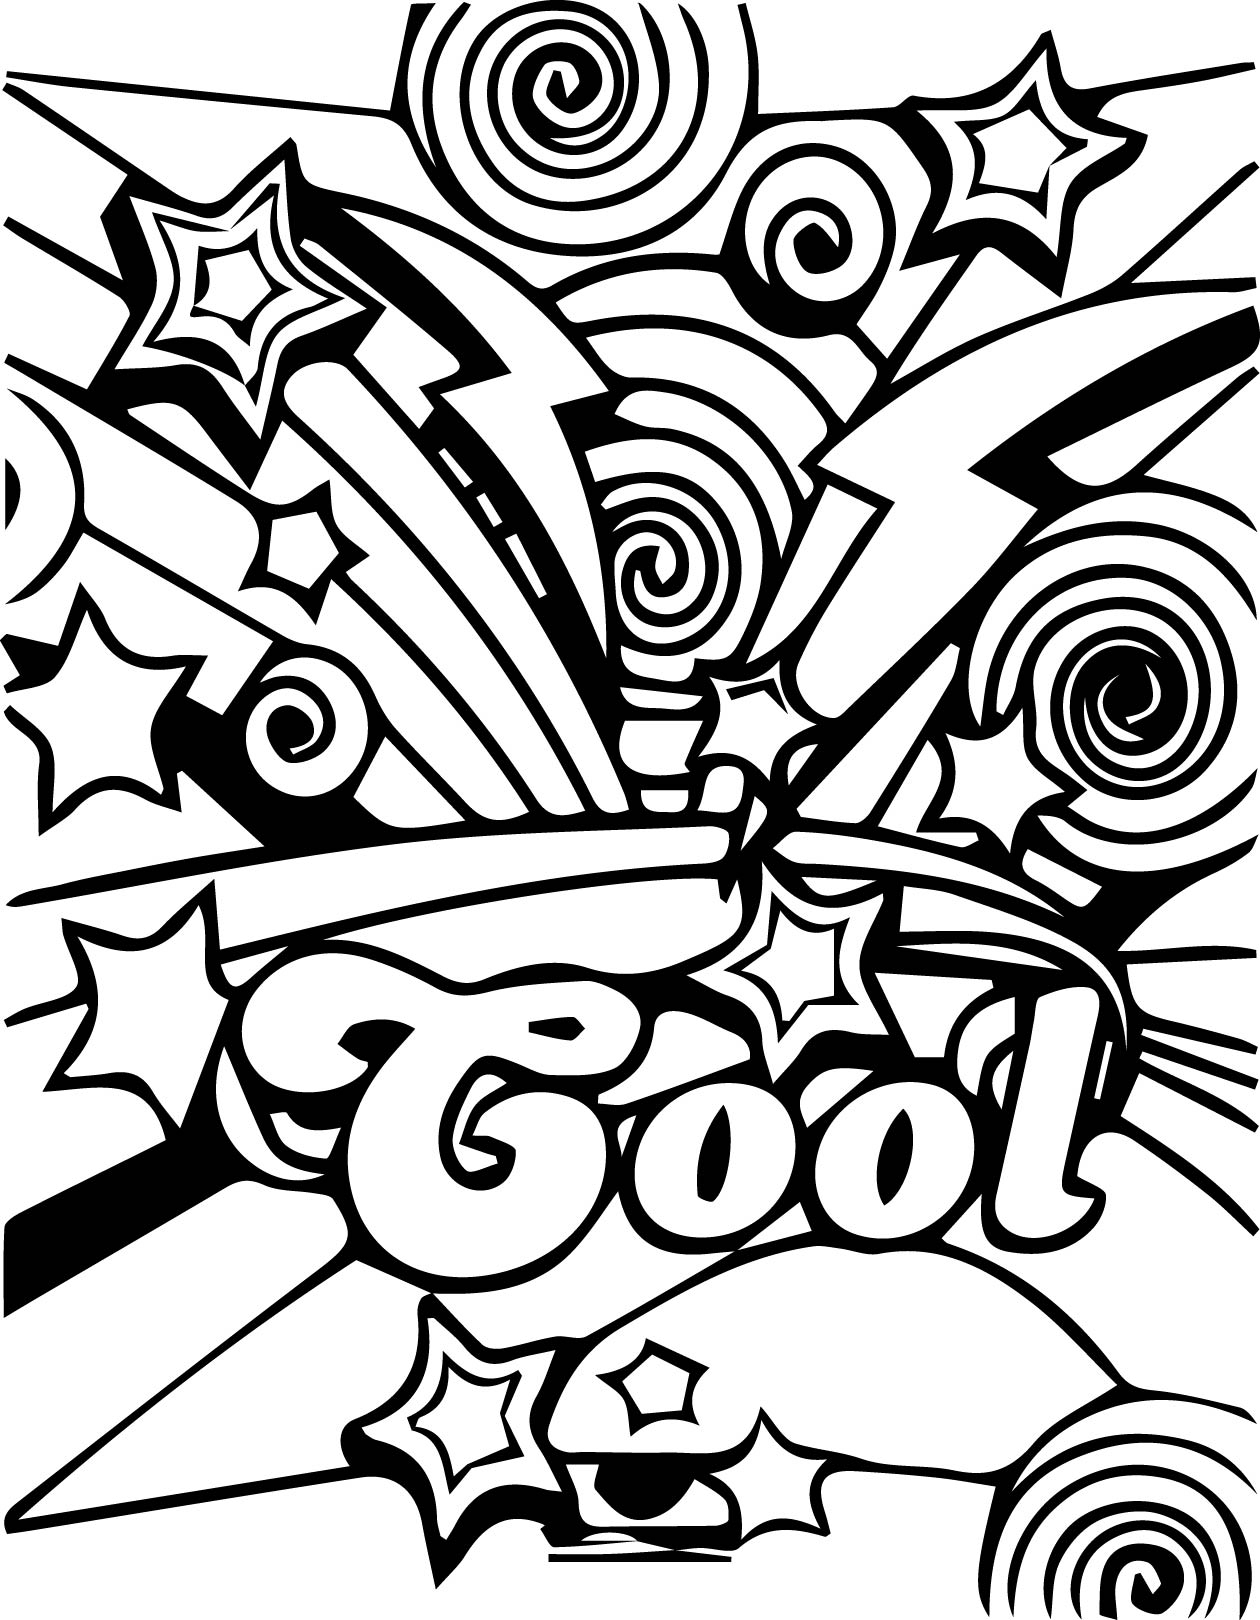 awesome coloring pages - awesome coloring pages printable awesome coloring pages